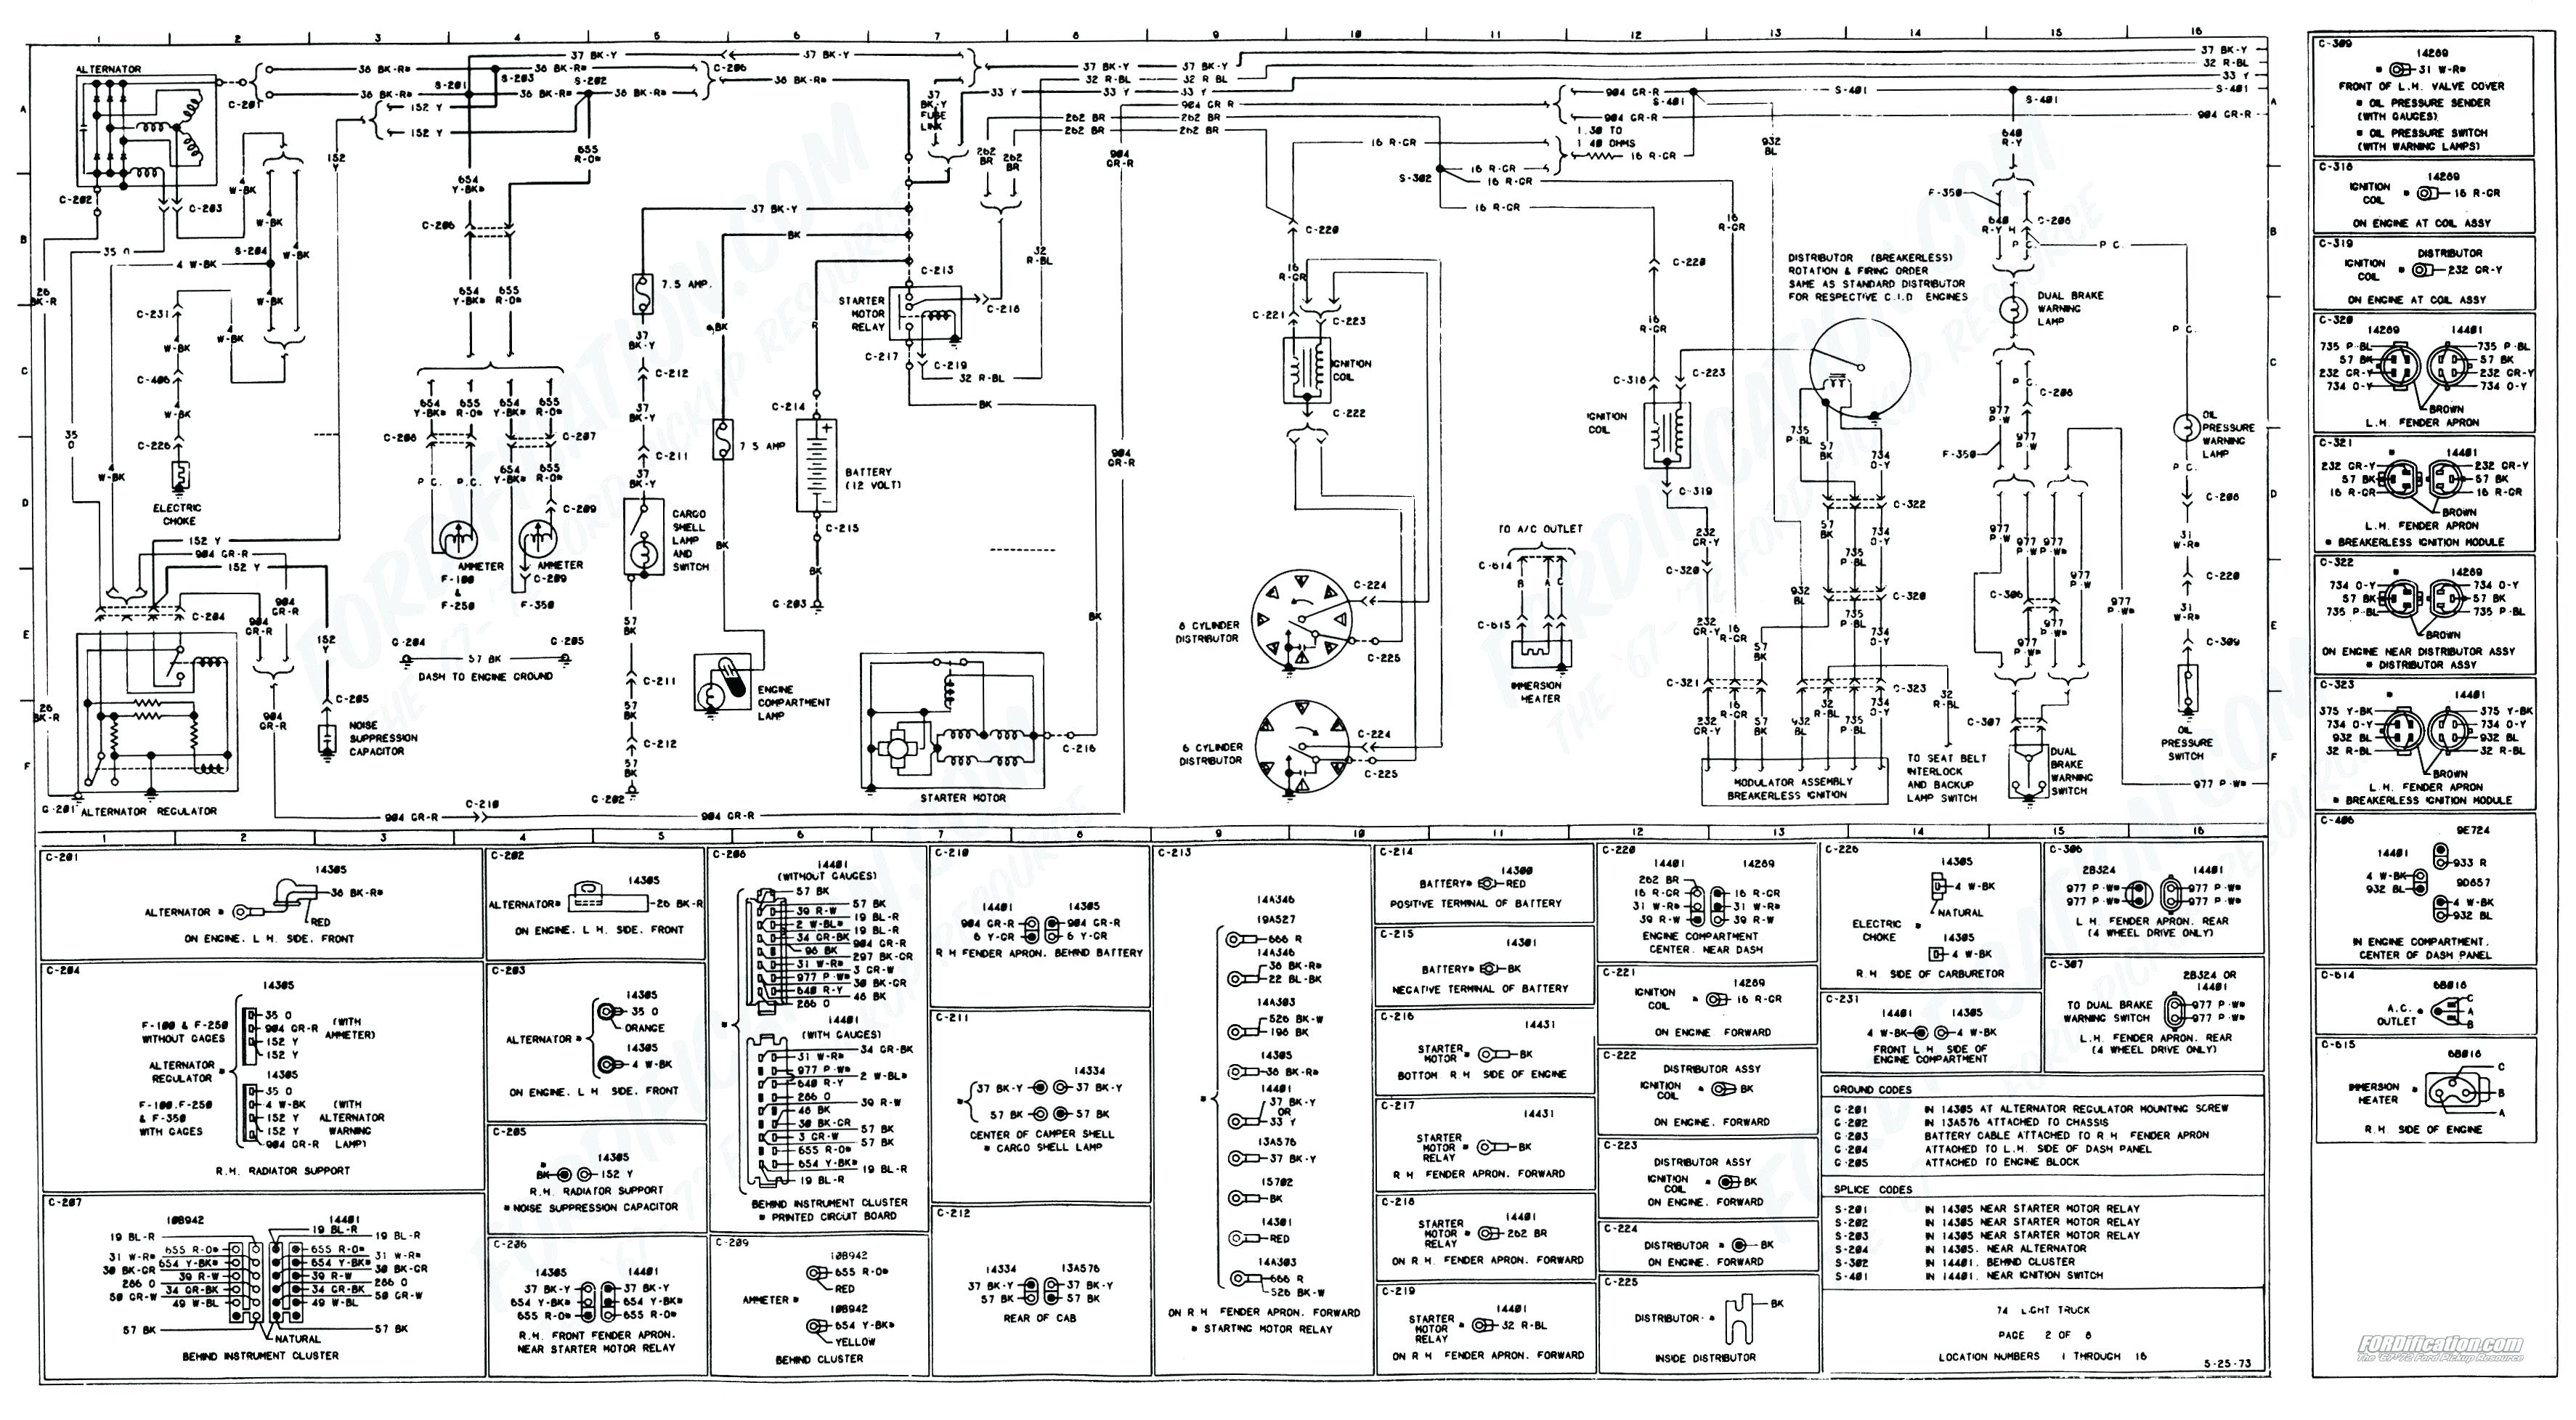 2004 Ford F 650 Wiring Diagram Diagrams 2011 450 Fuse Panel 08 Box Library Rh 33 Bloxhuette De F650